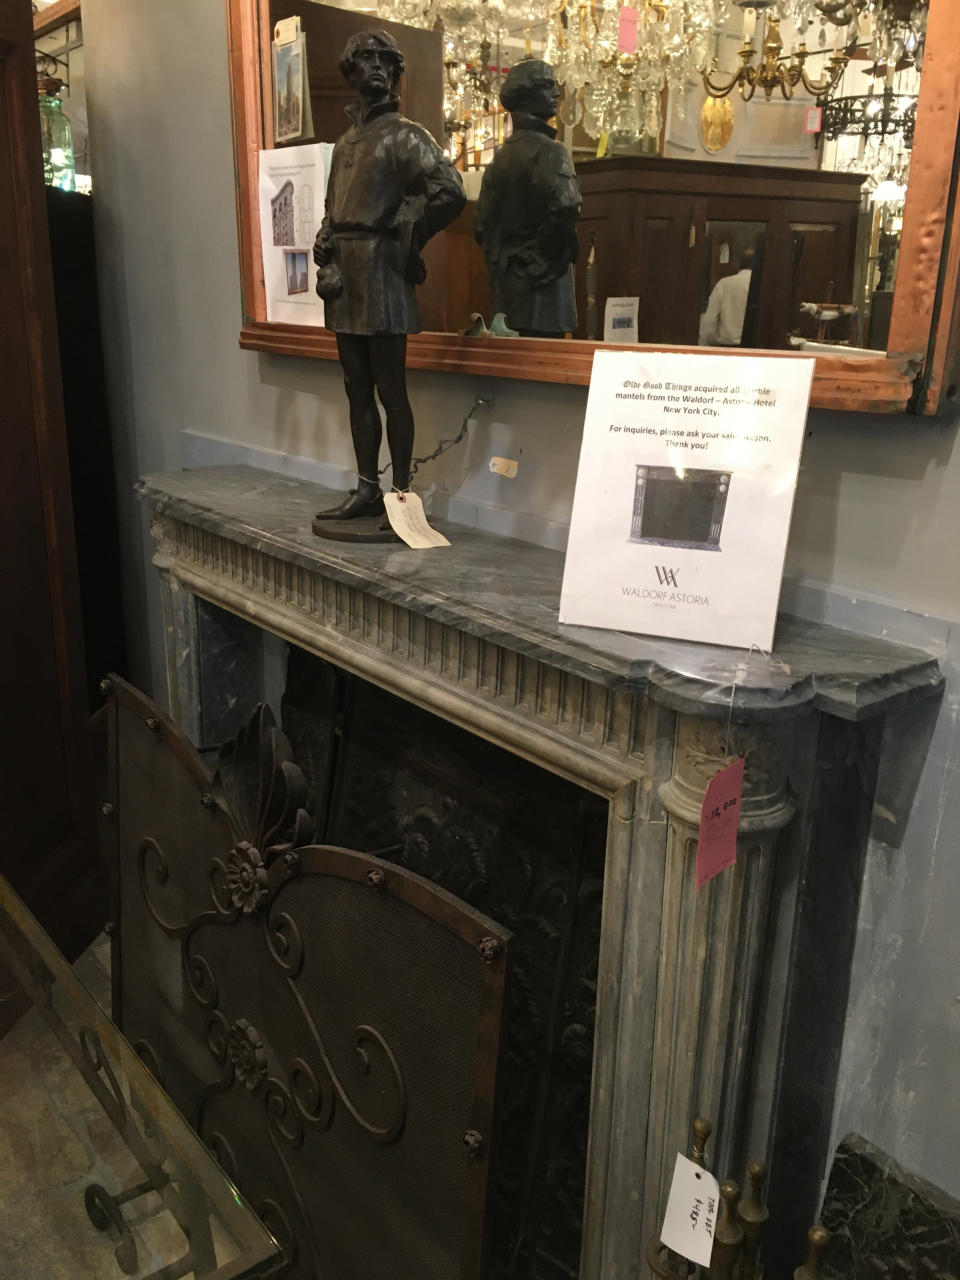 """This Oct. 15, 2019 photo shows a fireplace mantel salvaged from the Waldorf-Astoria hotel, among other items available for sale at Olde Good Things salvage store in New York. Two of the hottest trends in home decor are sustainability and authenticity. """"It's about both history and sustainability,"""" says Madeline Beauchamp of Olde Good Things, one of the oldest architectural salvage businesses in the country, with one shop in Los Angeles, another in Scranton, Pennsylvania, two stores in New York, and a flagship store to open soon in Midtown Manhattan. (Katherine Roth via AP)"""